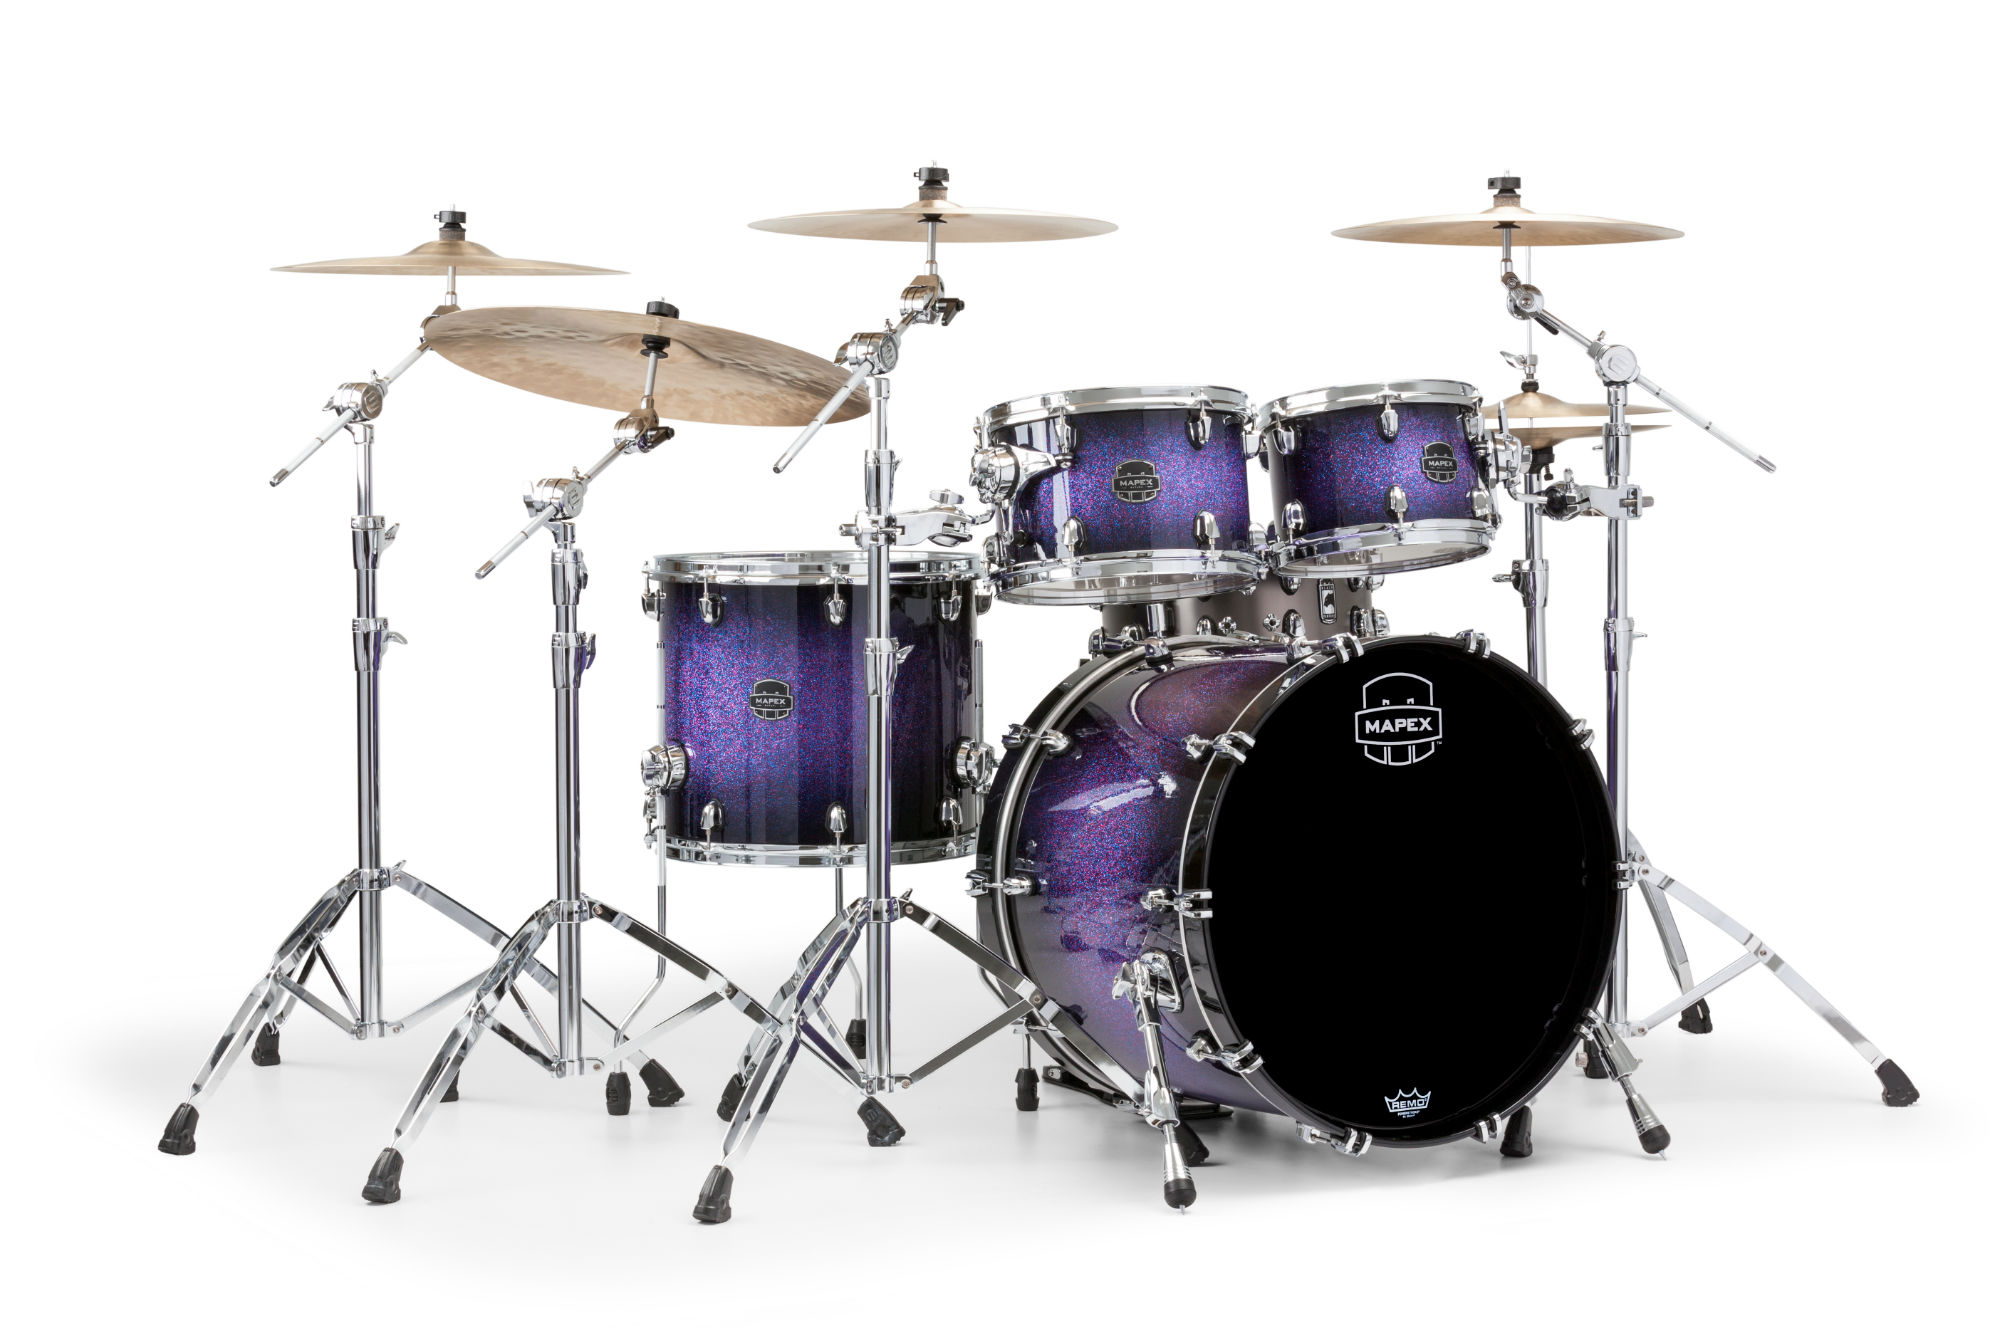 Mapex Saturn V MH Rock 4-piece shell pack with SONIClear Edge - SV529XUPH - Red & Blue Hybrid Sparkle